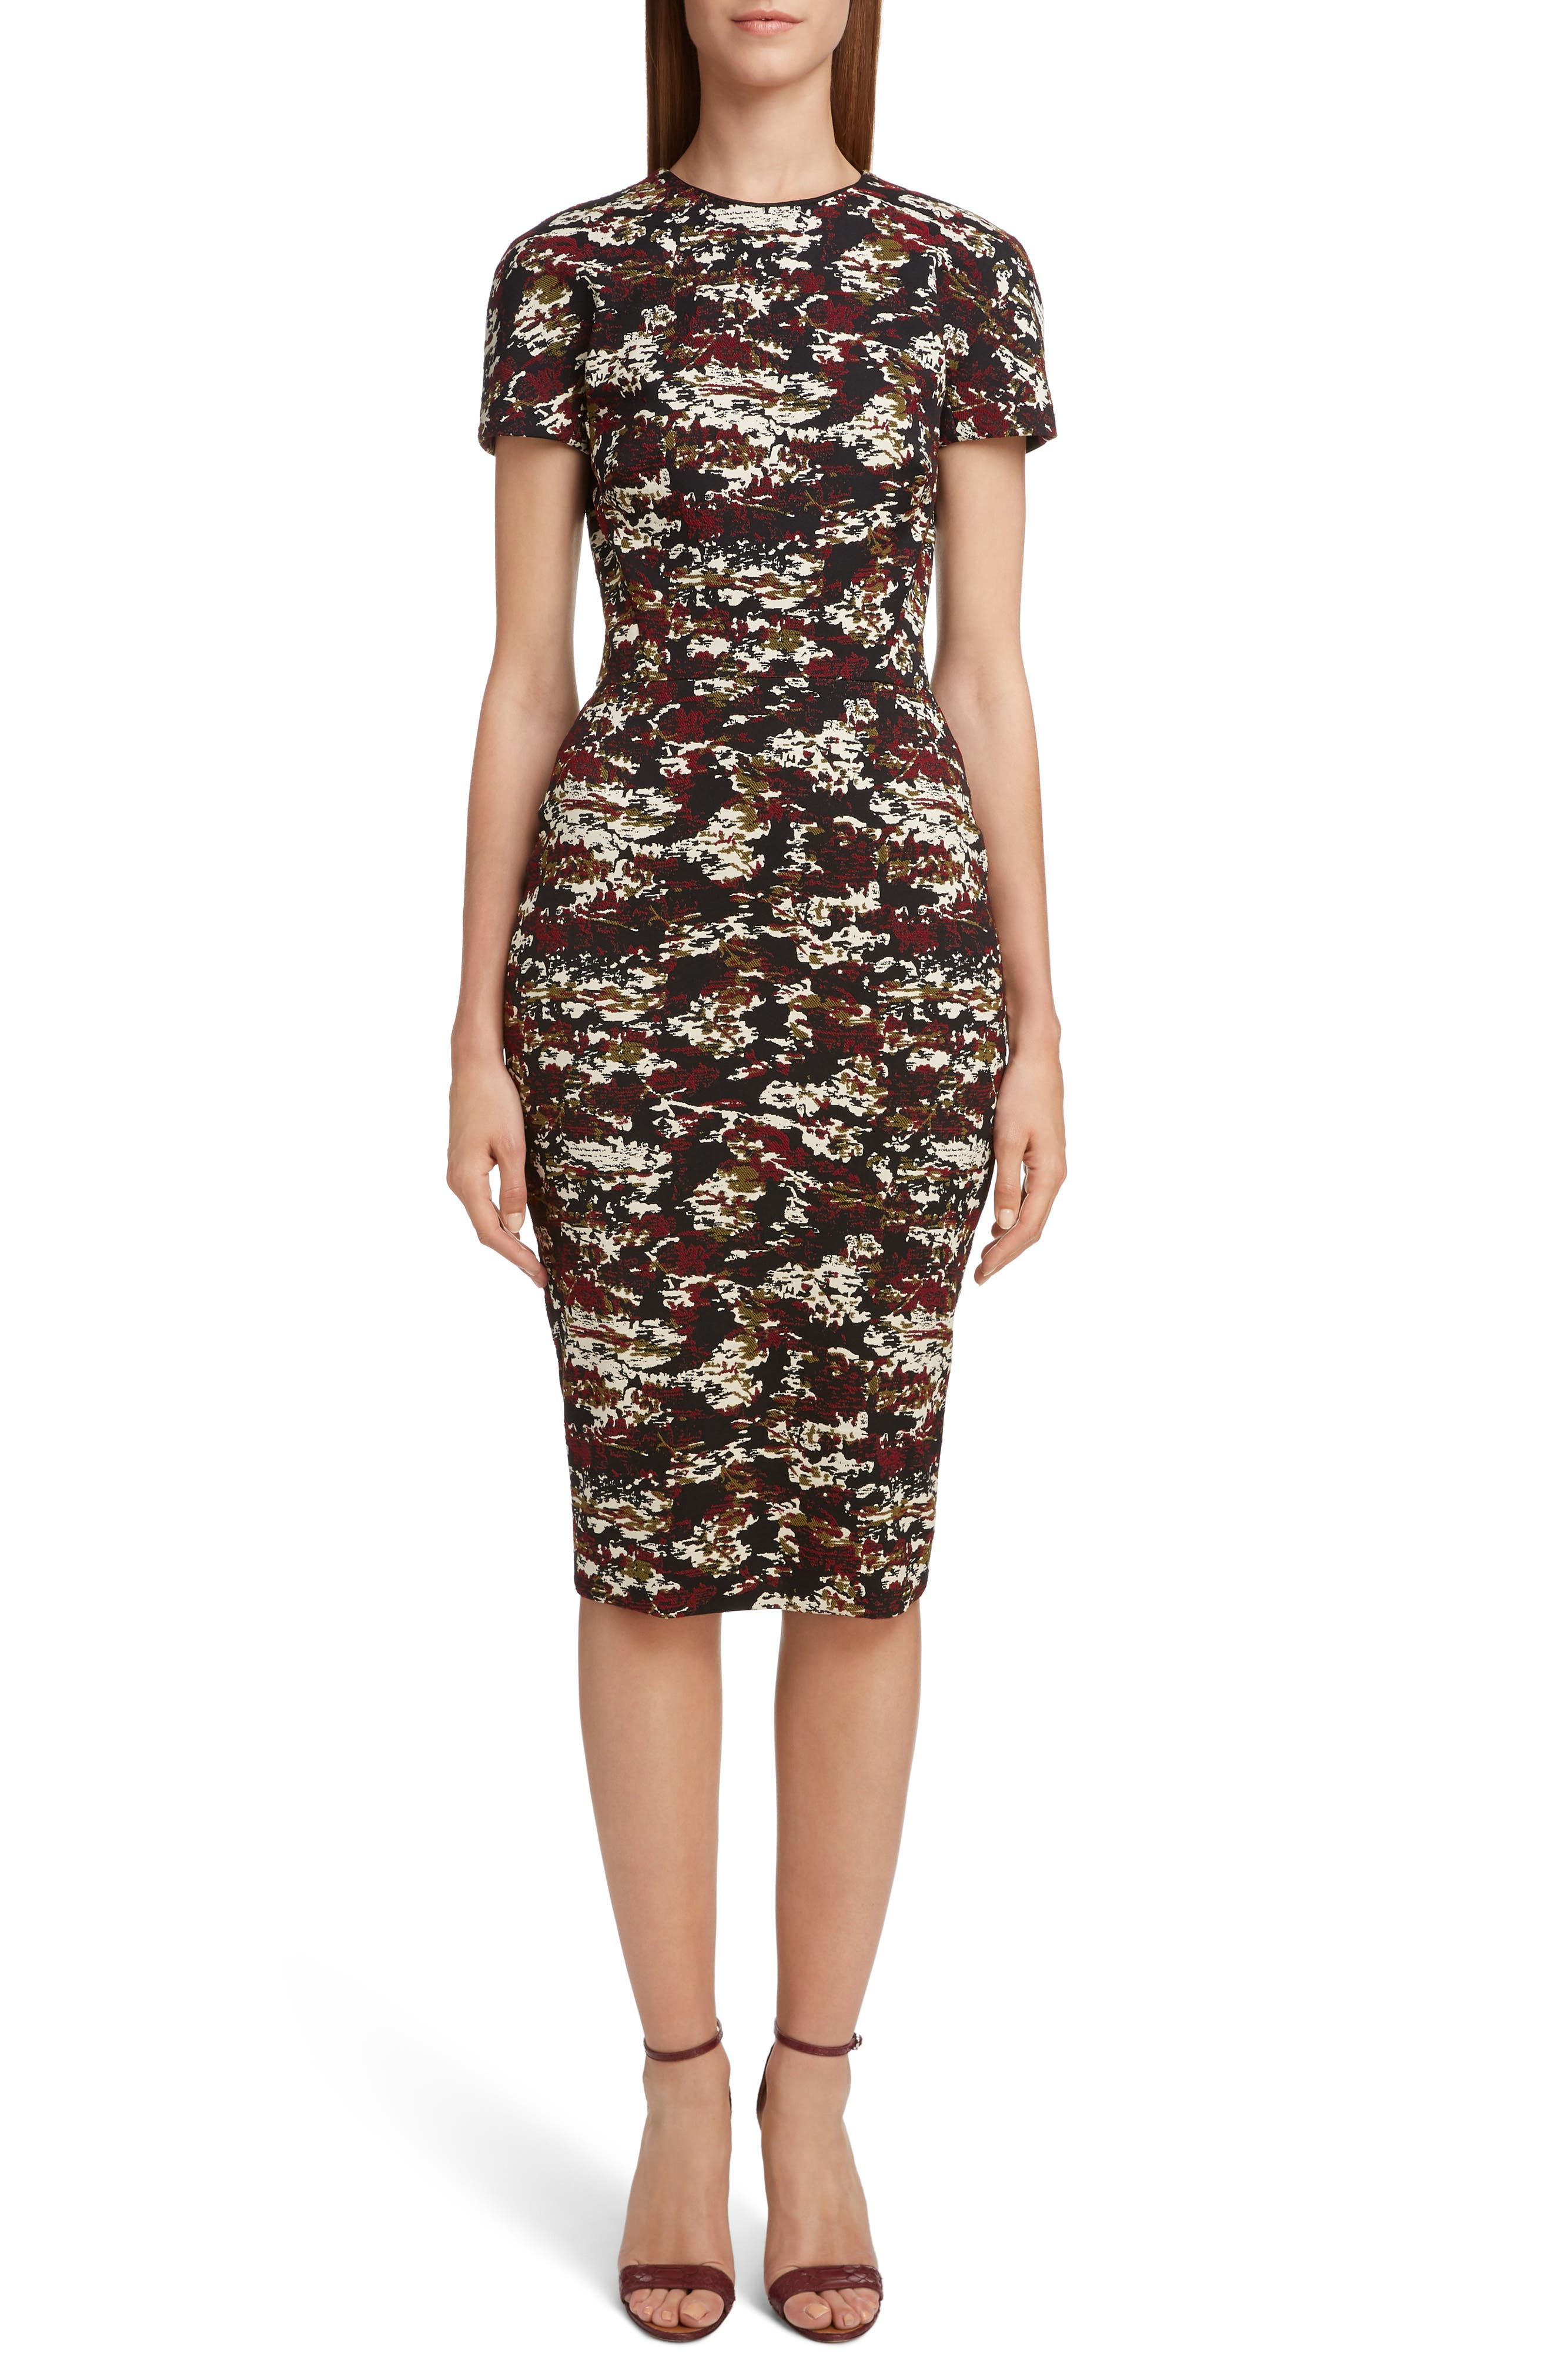 Victoria Beckham Camouflage Jacquard Dress, US / 16 UK - Black